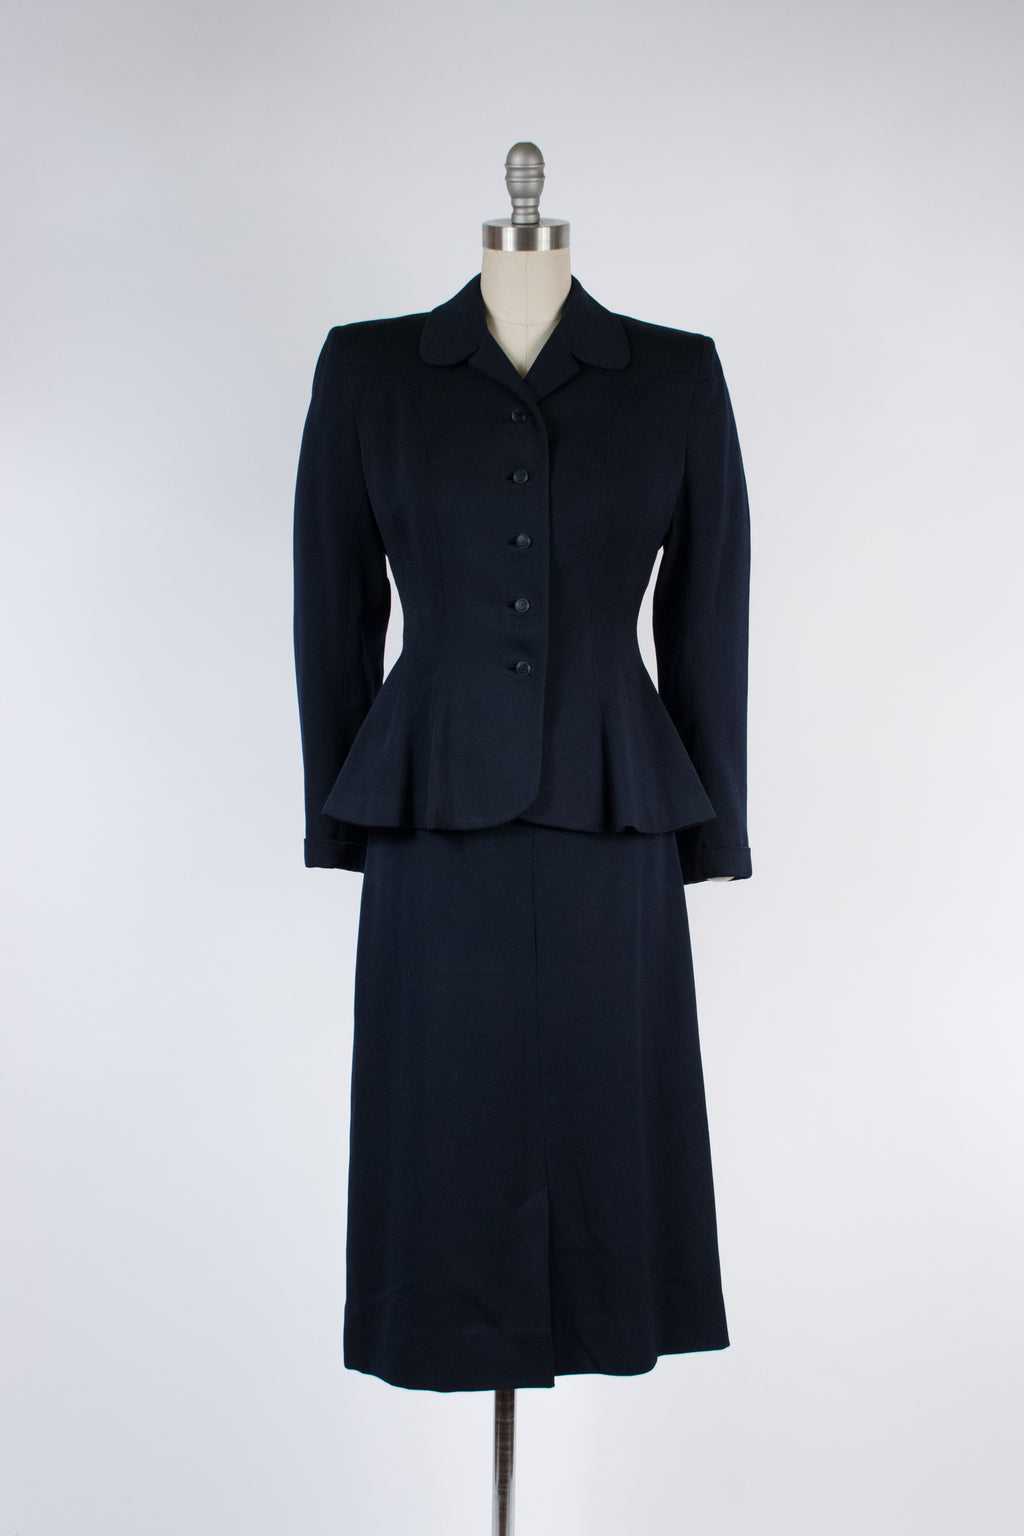 Timeless 1940s Tailored Suit of Navy Blue Gabardine with Flared Jacket